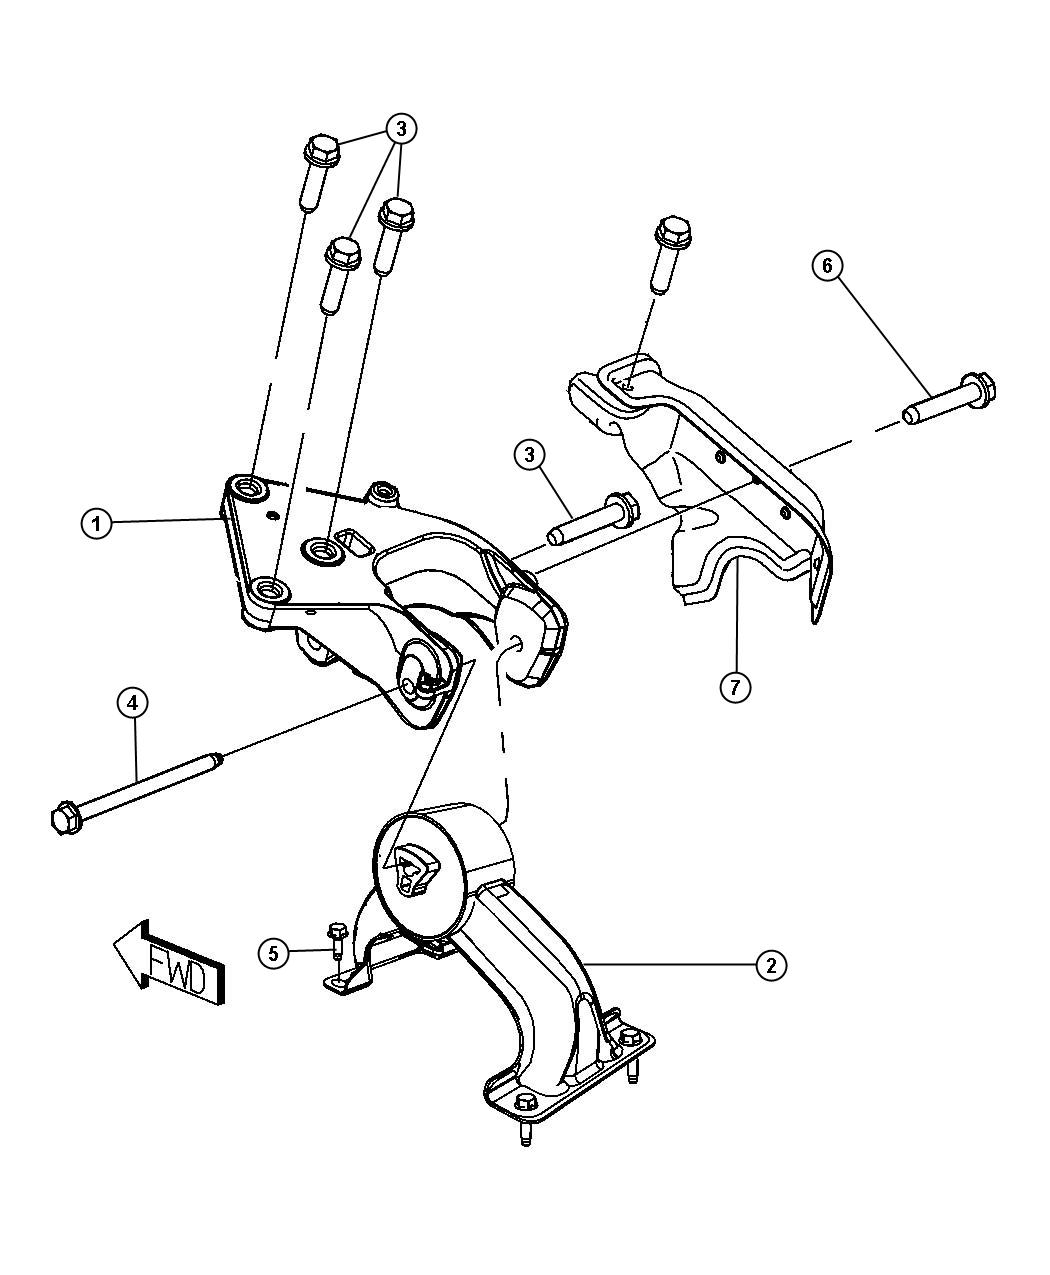 2009 Chrysler Town & Country Engine mount, support